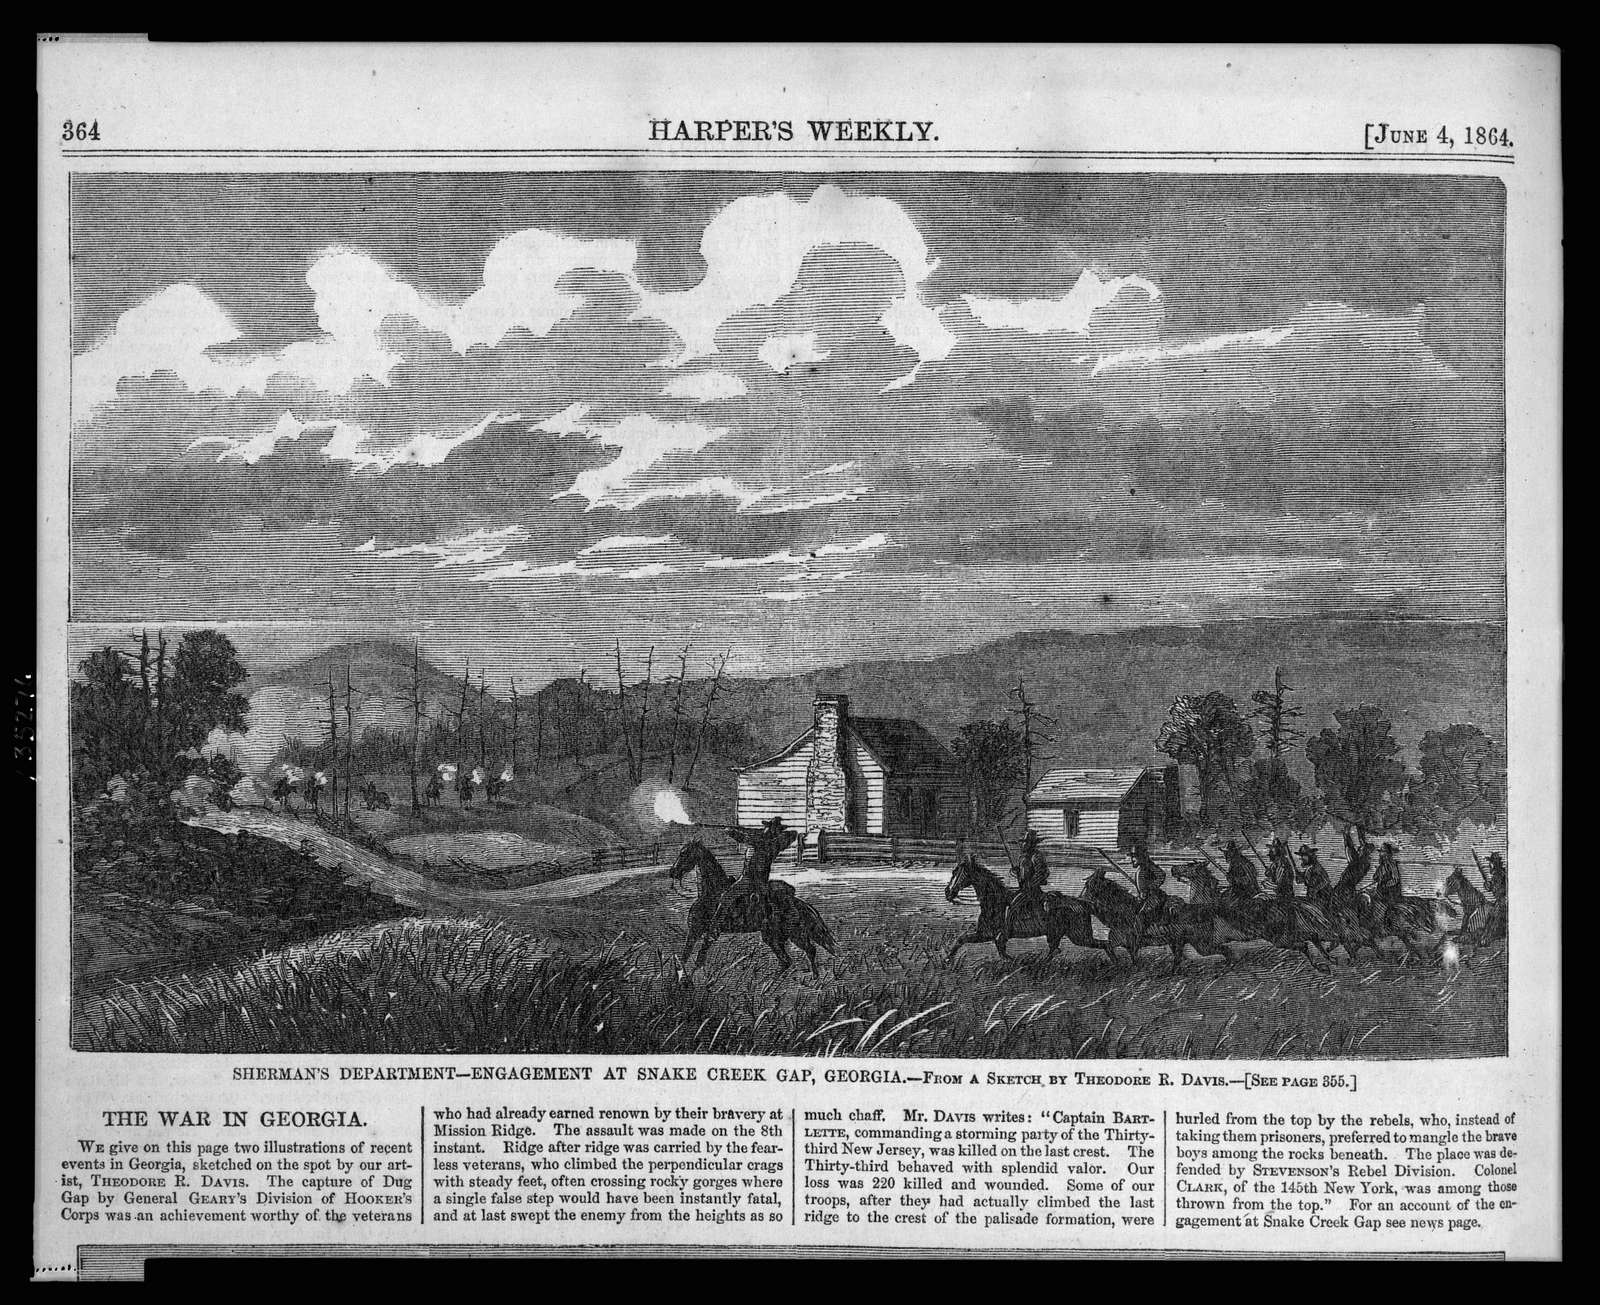 Sherman's department - engagement at Snake Creek Gap, Georgia / from a sketch by Theodore R. Davis.